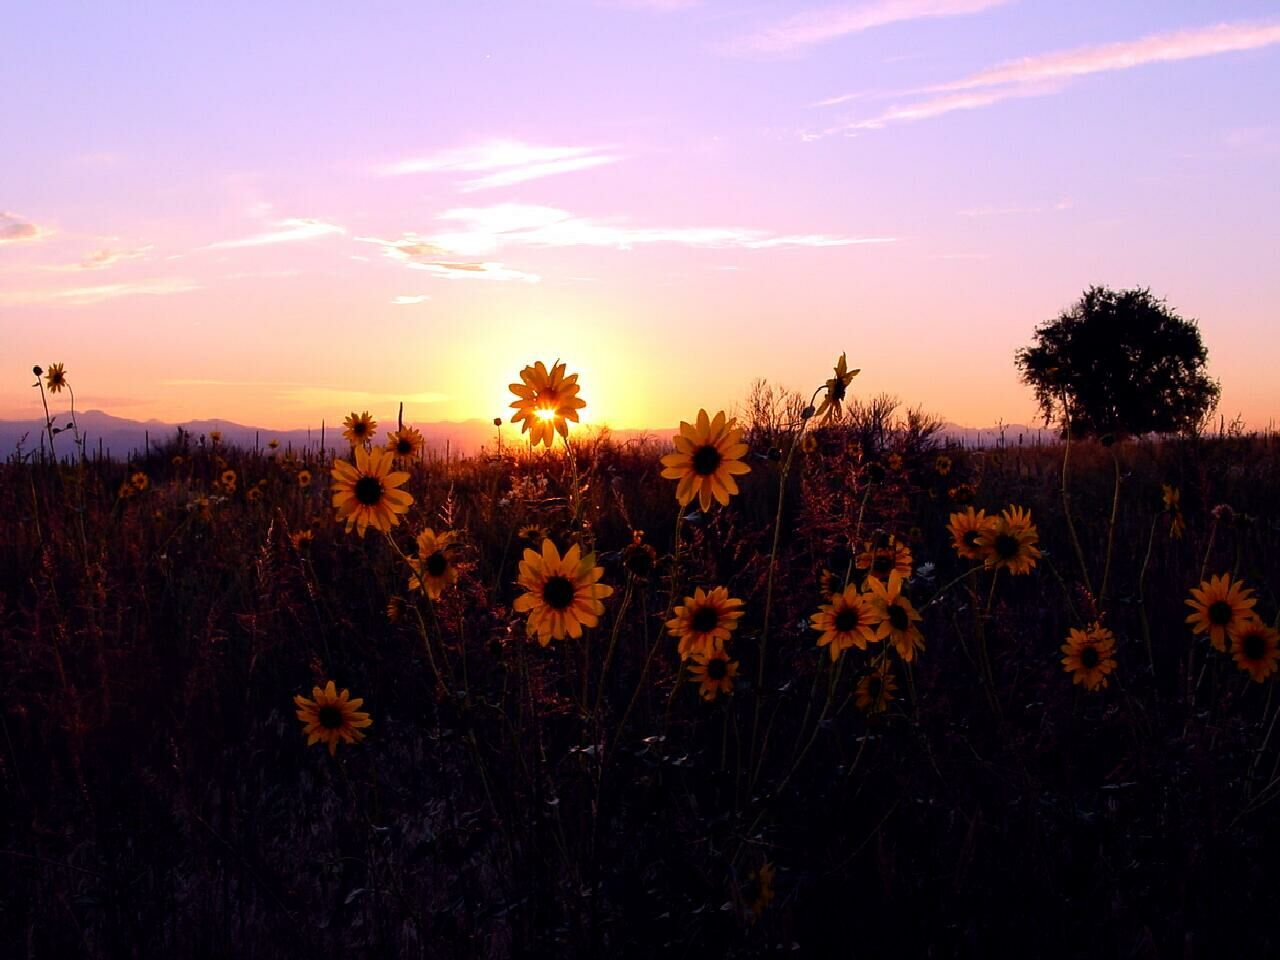 A Blooming Flower With Sunset Beautiful Backgrounds Sunset Sunflower Sunset